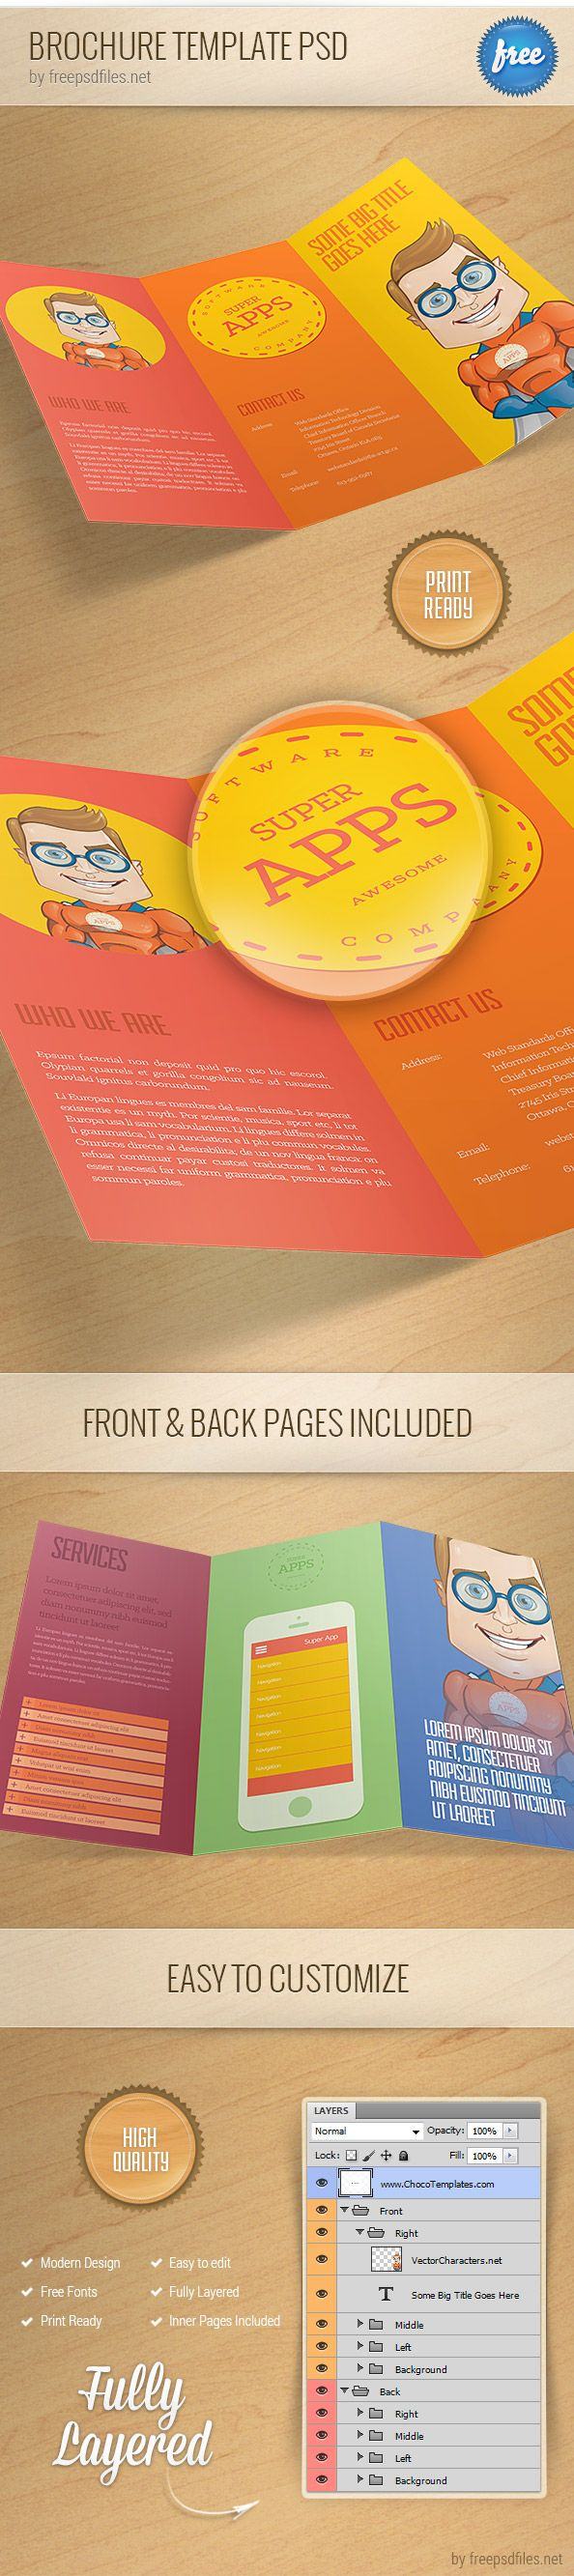 17 best ideas about brochure templates brochure template psd 1 psd files